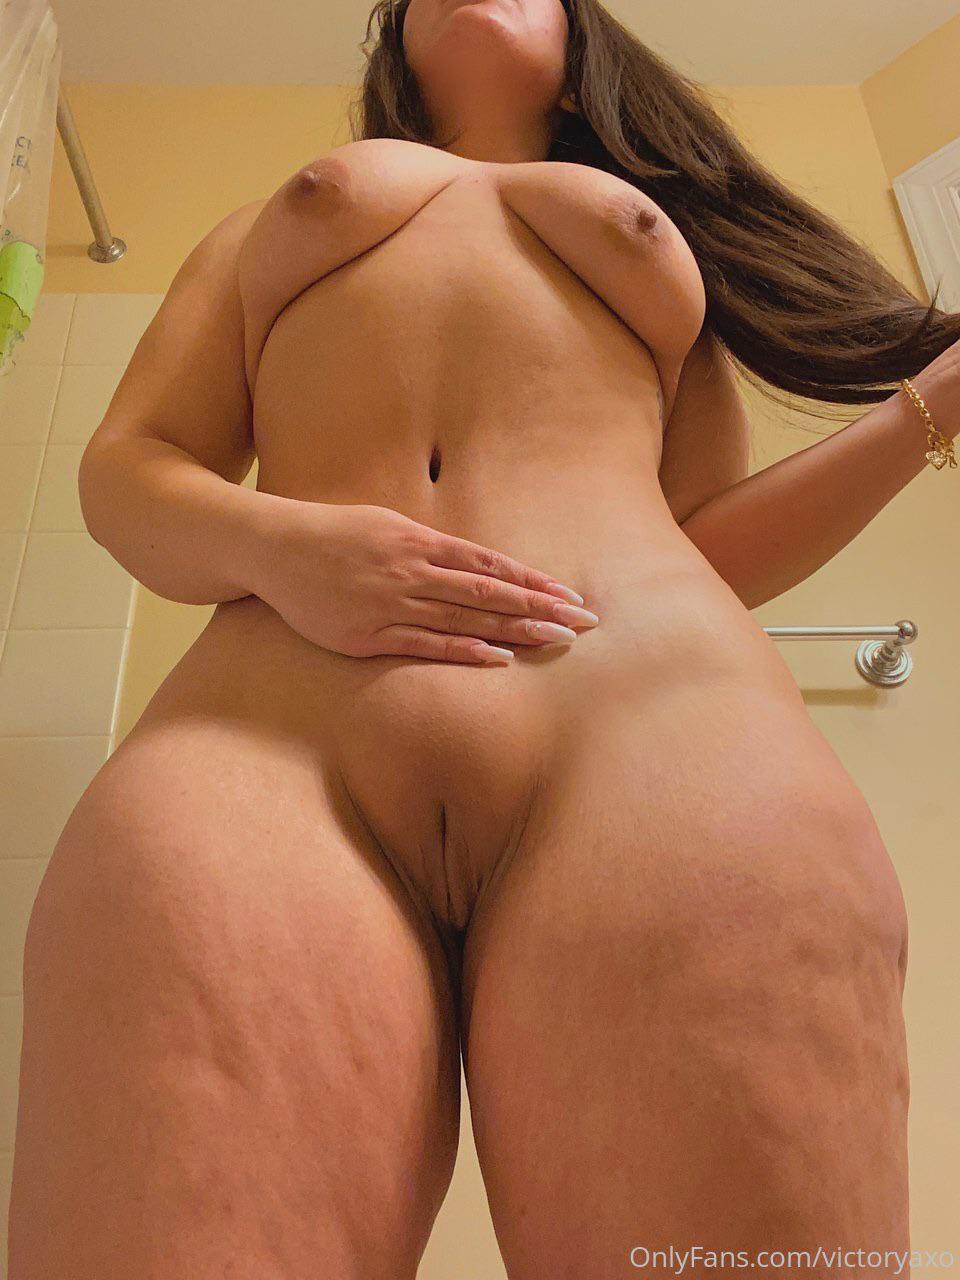 A Fat Pussy Images